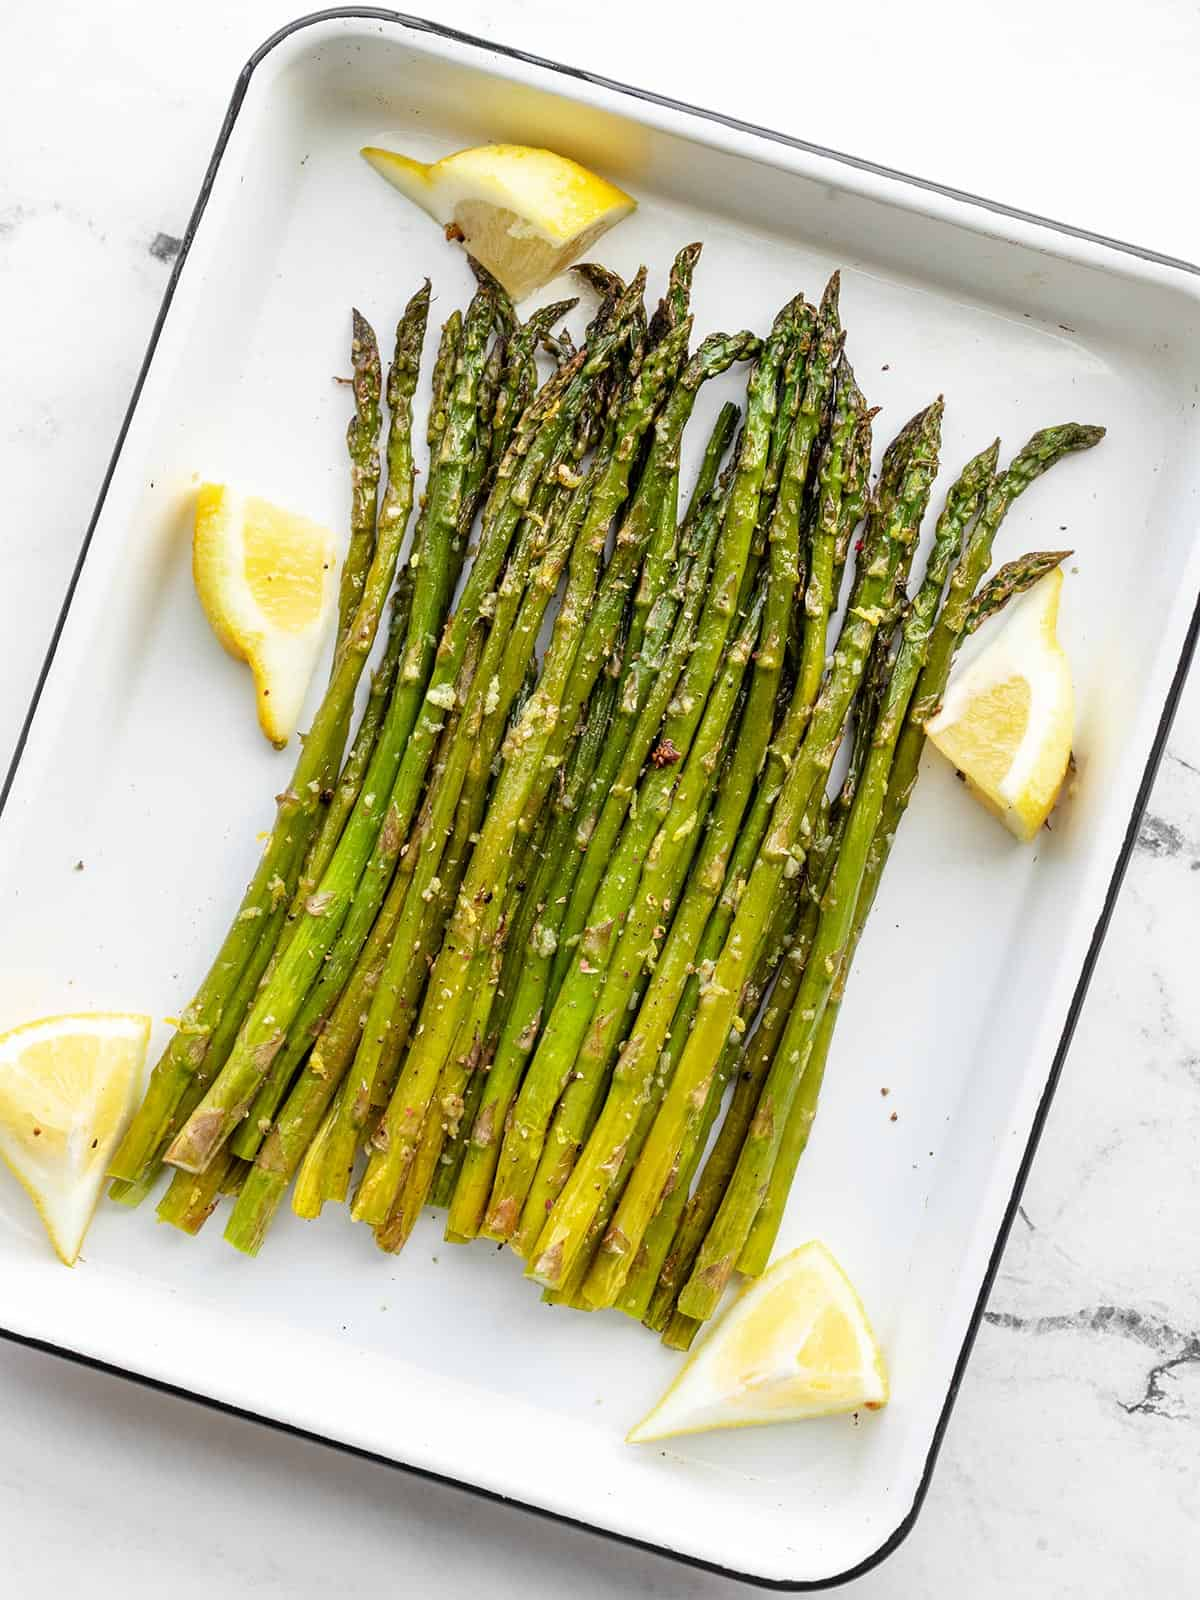 Lemon Garlic Roasted Asparagus on a white roasting pan with lemon wedges